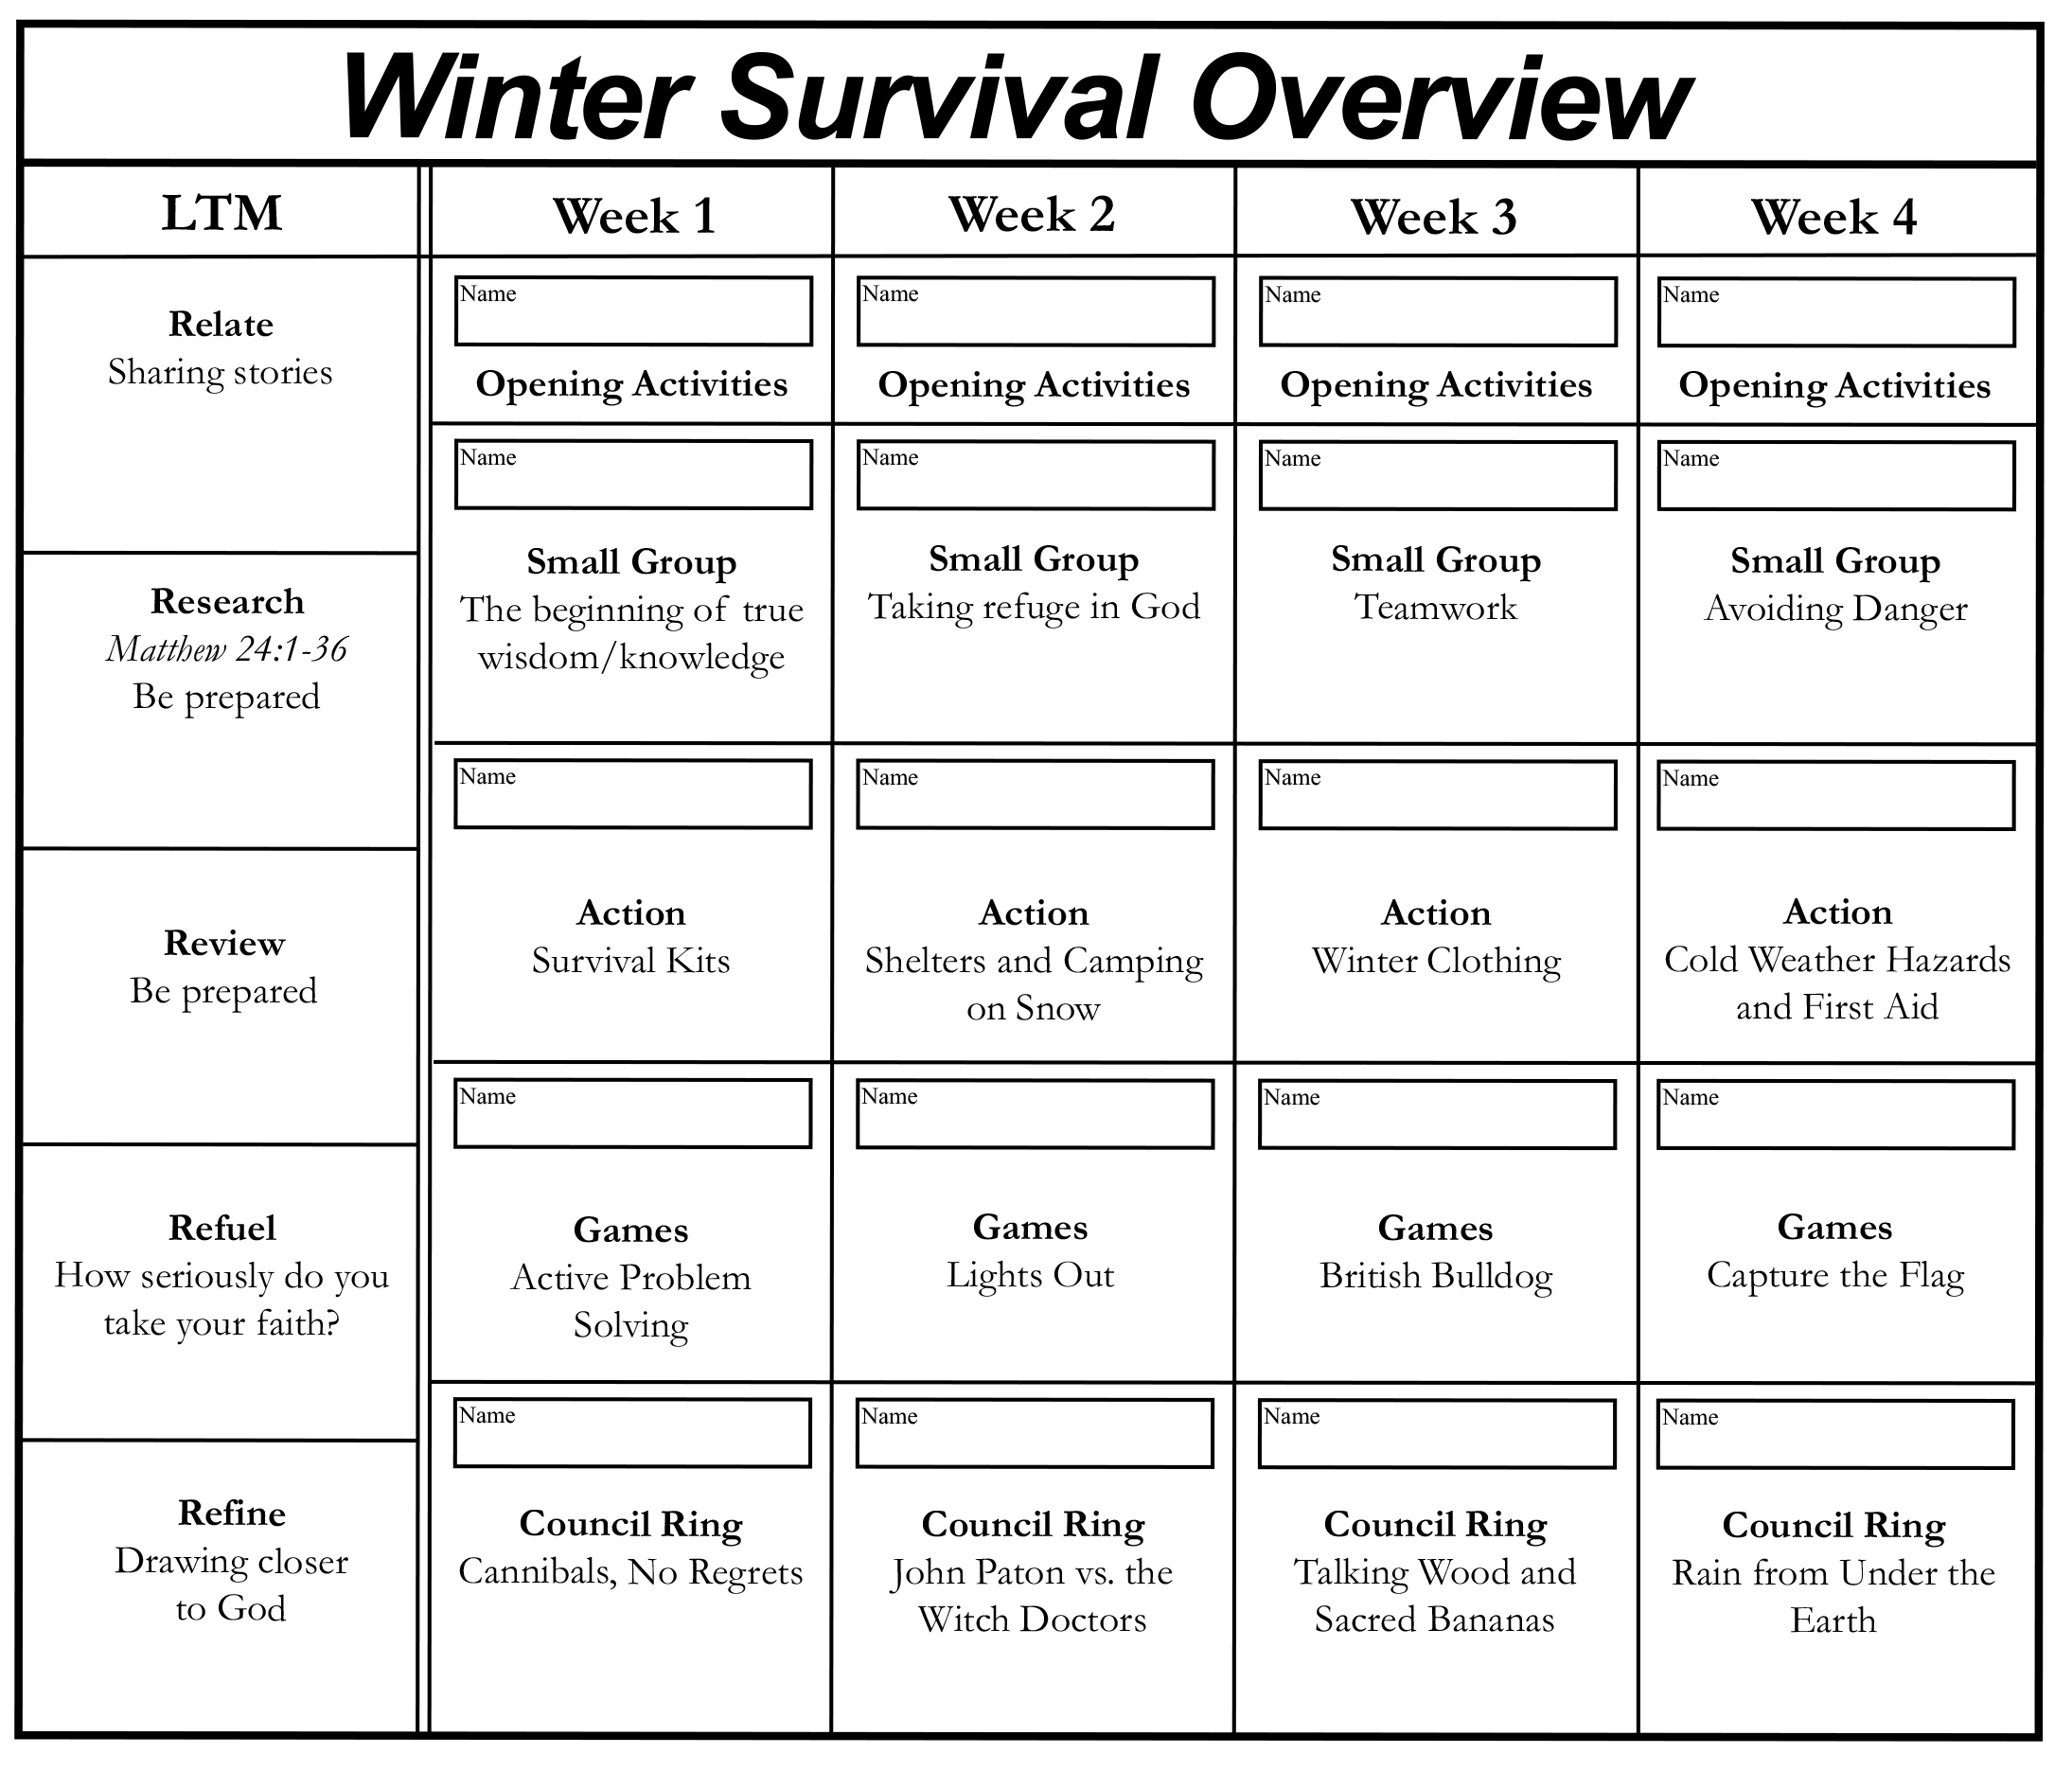 winter-survival-overview.jpg